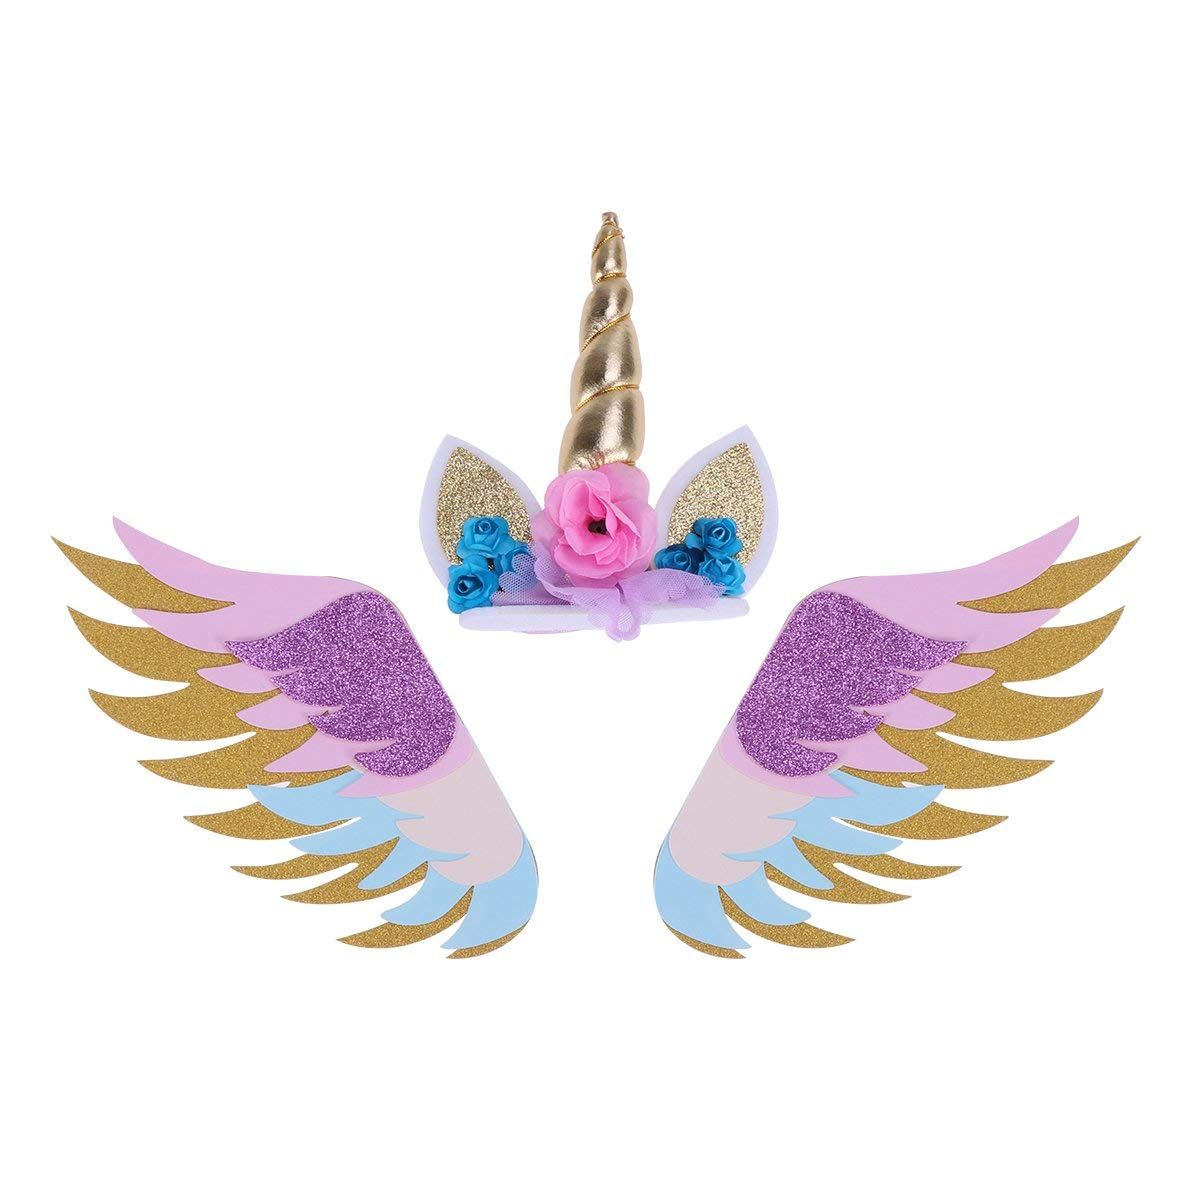 Unicorn Wings Cake Topper Glitter Paper Cake Insertion Card Cake Decoration Cupcake Toppers Birthday Baby Shower Wedding 3PCS